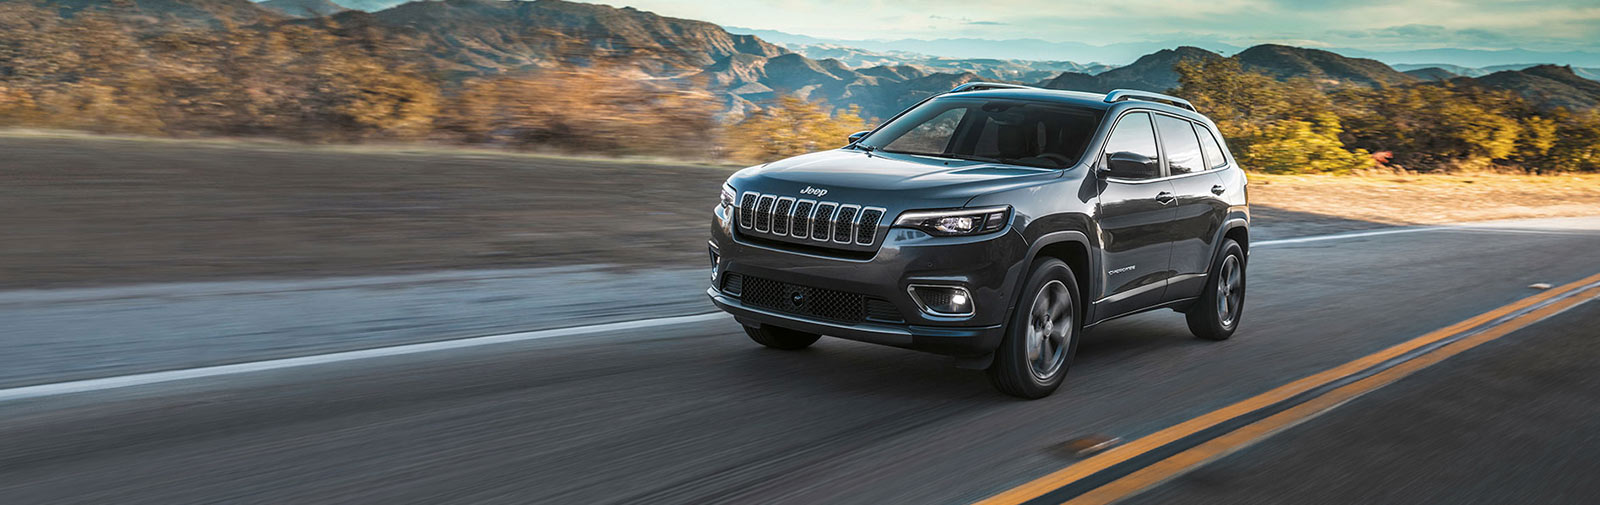 cherokee-business-leasing